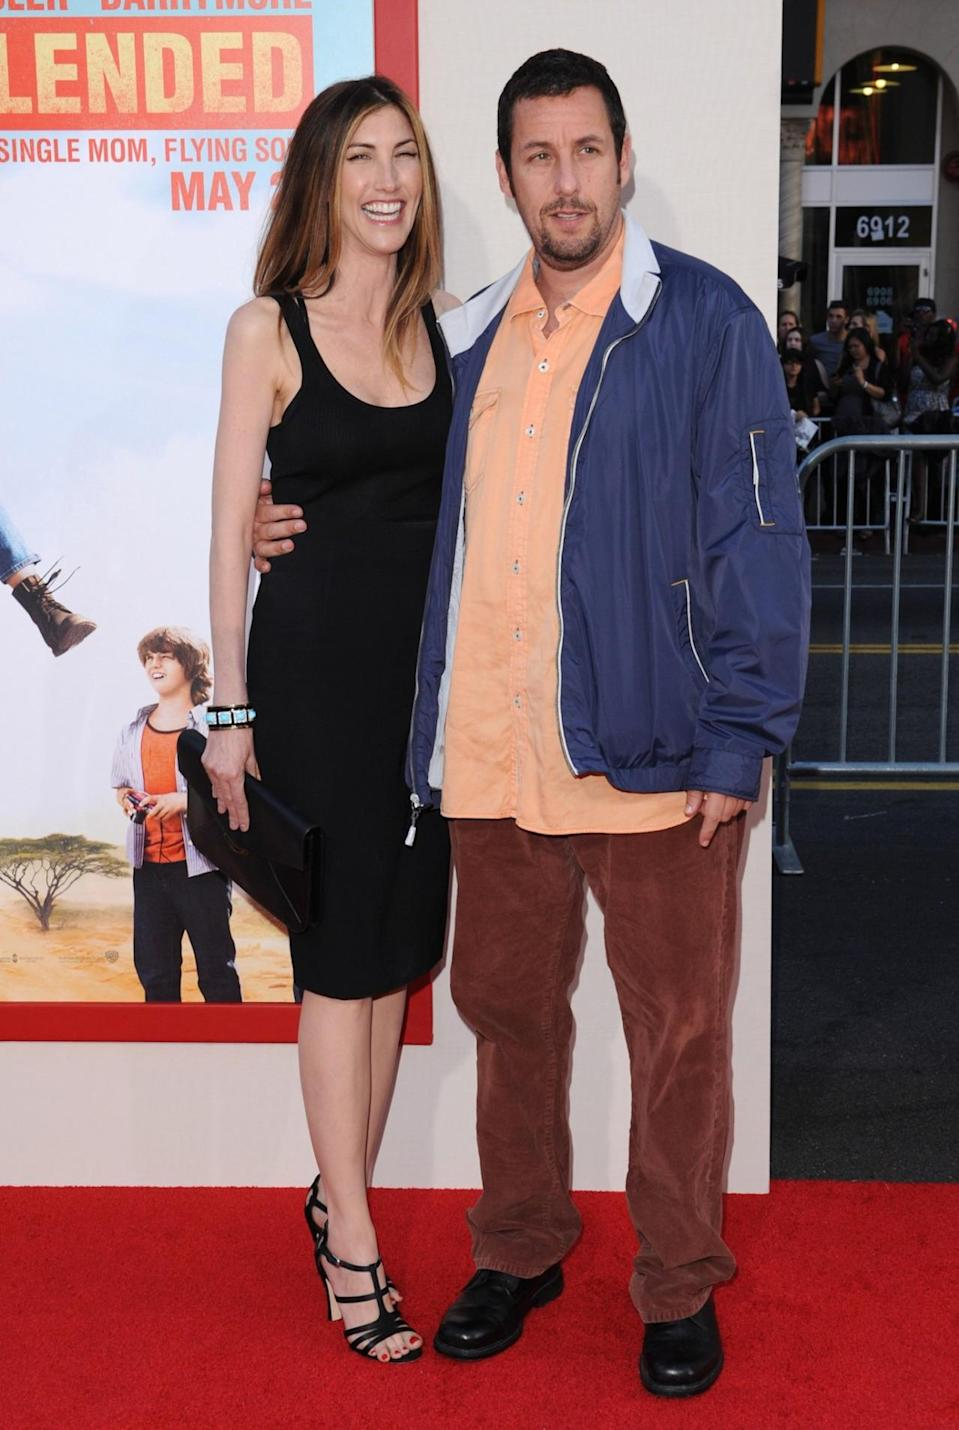 <p>Sandler threw on another mismatched outfit for the Hollywood premiere of <i>Blended</i> in 2014, while wife, Jackie, opted for a classic LBD. She loves her man no matter what he wears! (Photo: Axelle/Bauer-Griffin/FilmMagic)</p>